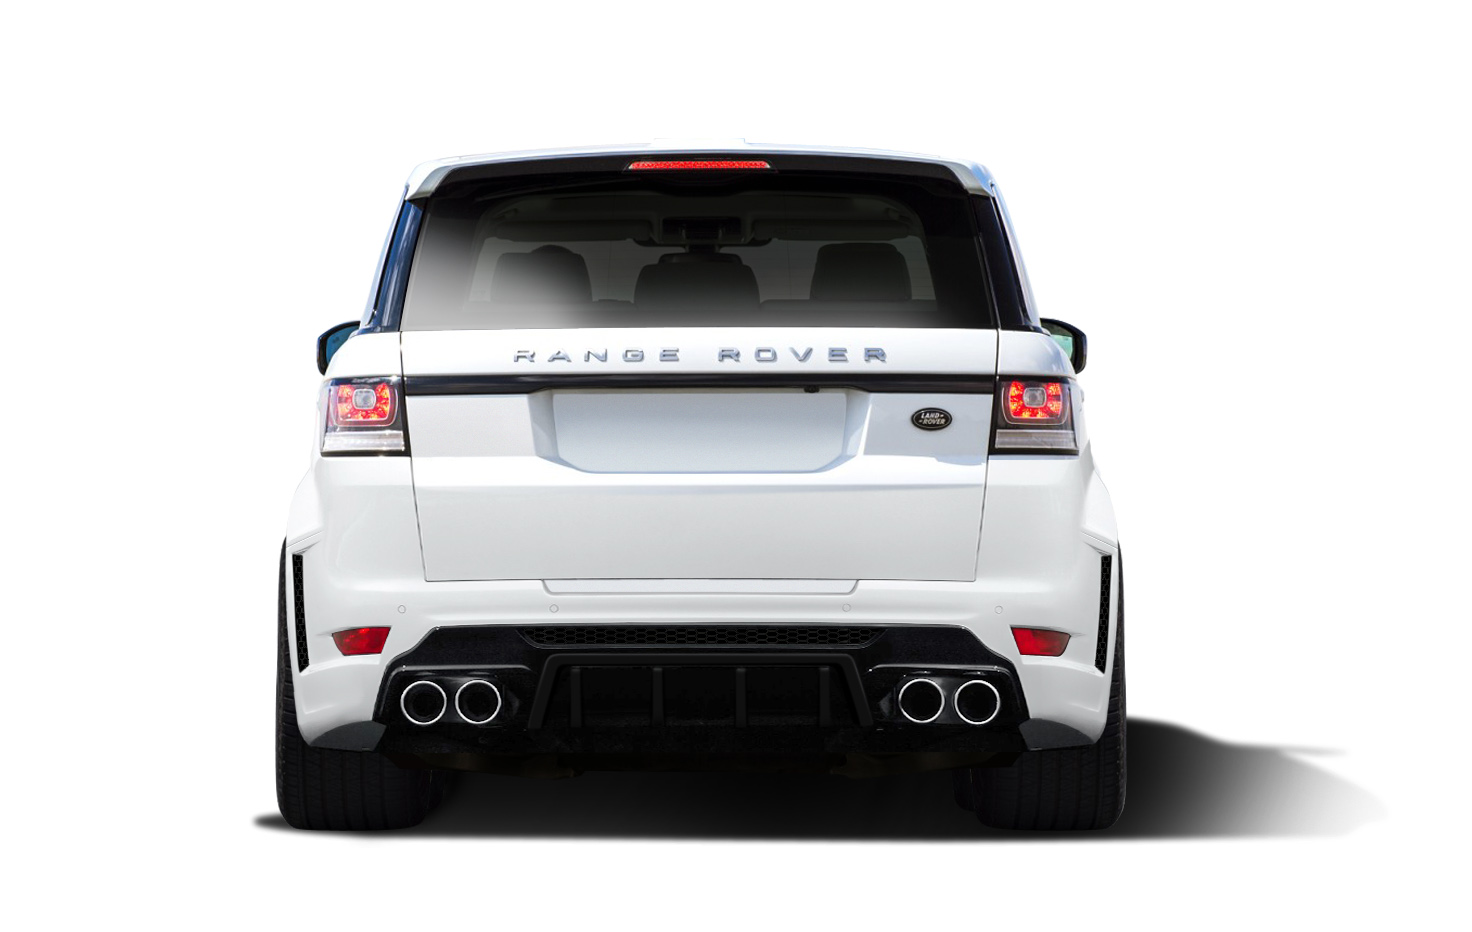 Polyurethane Rear Bumper Body Kit For 2015 Land Rover Range Rover